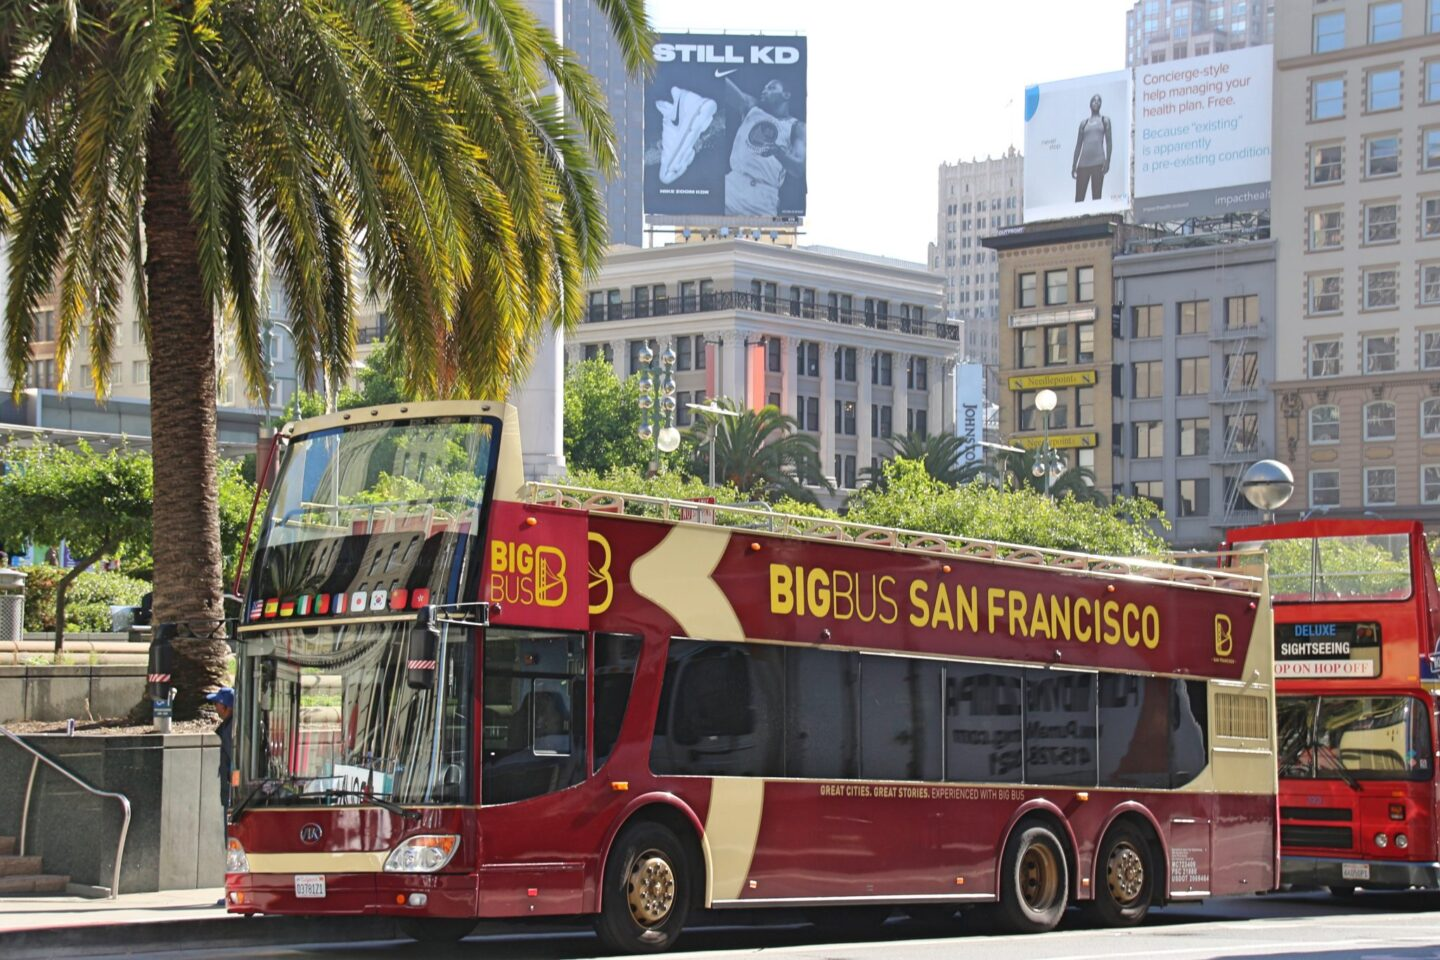 USA: Exploring San Francisco – The City By The Bay with Big Bus Tours